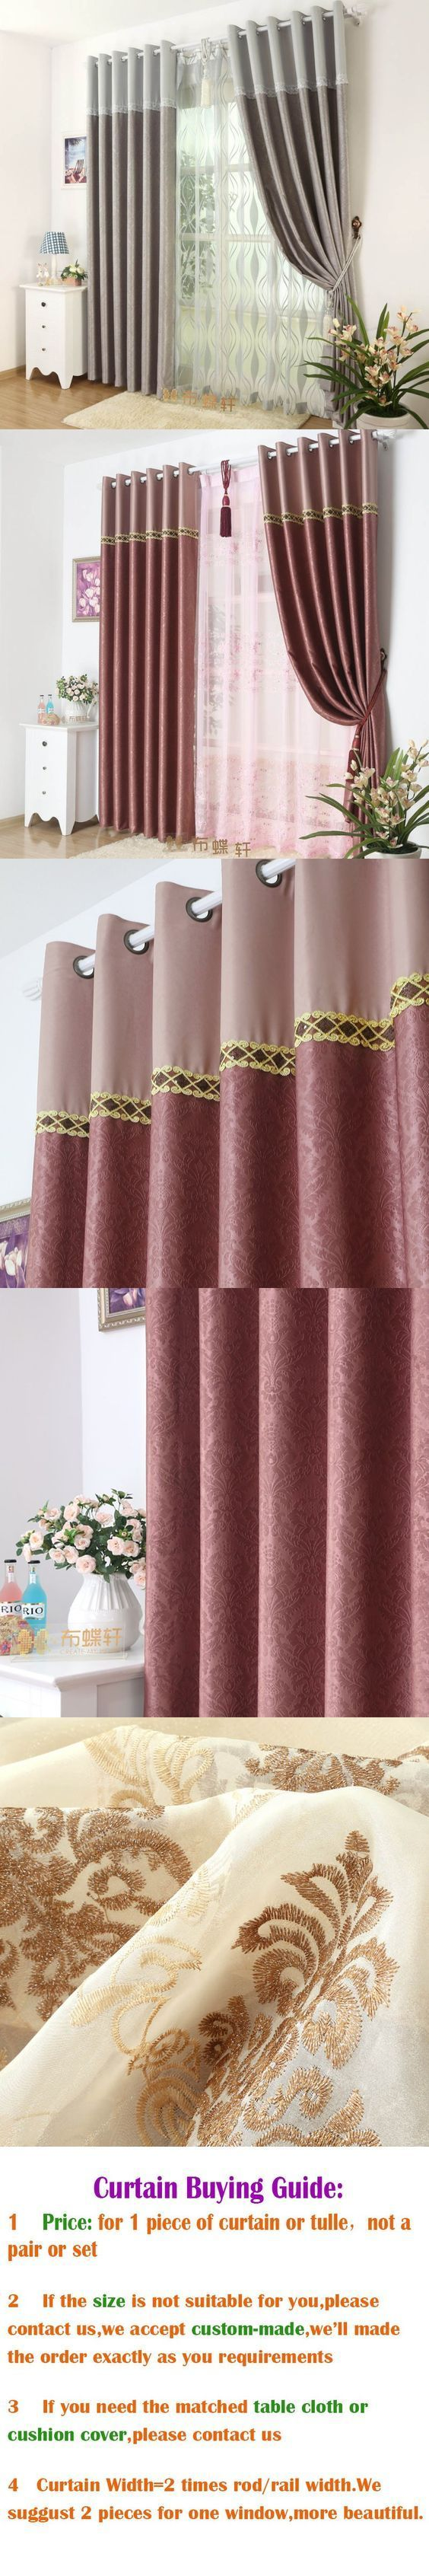 Full blackout curtain fabrics for bedroom soundproof home curtains